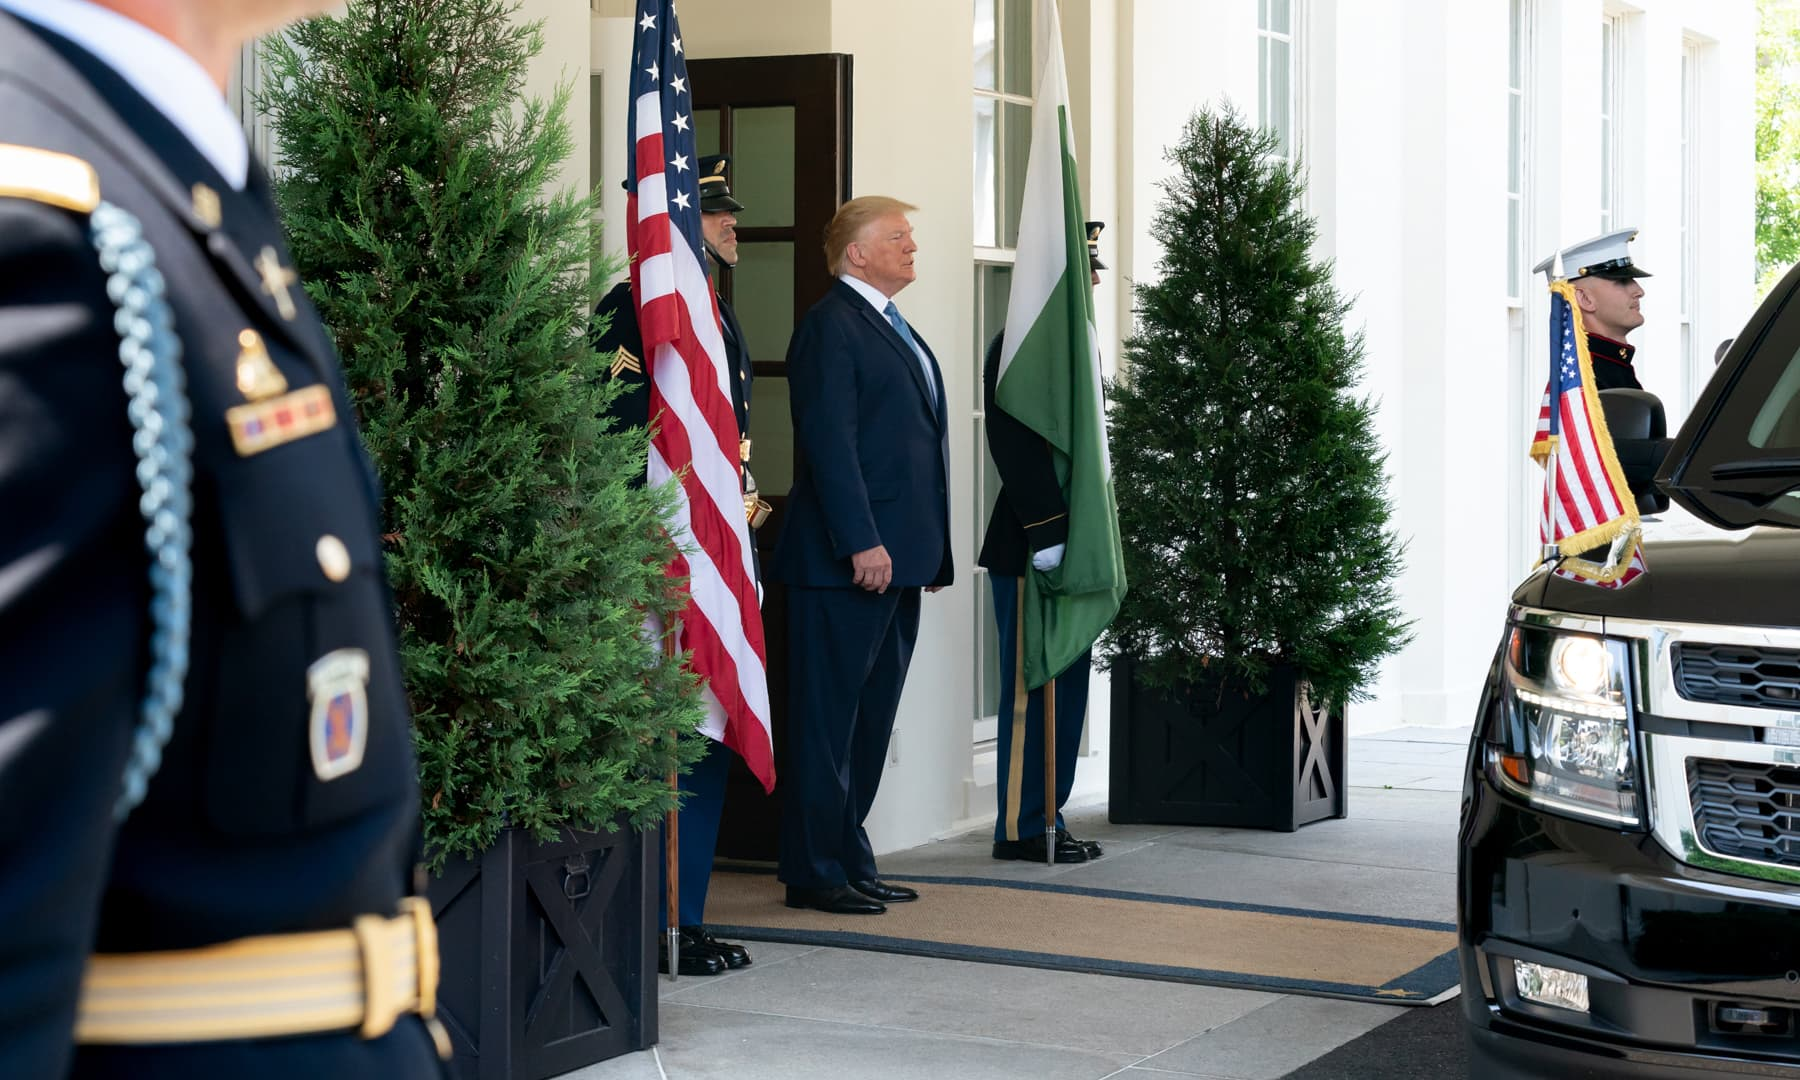 US President Donald Trump awaiting Prime Minister Imran Khan's arrival. — Photo courtesy White House Flickr